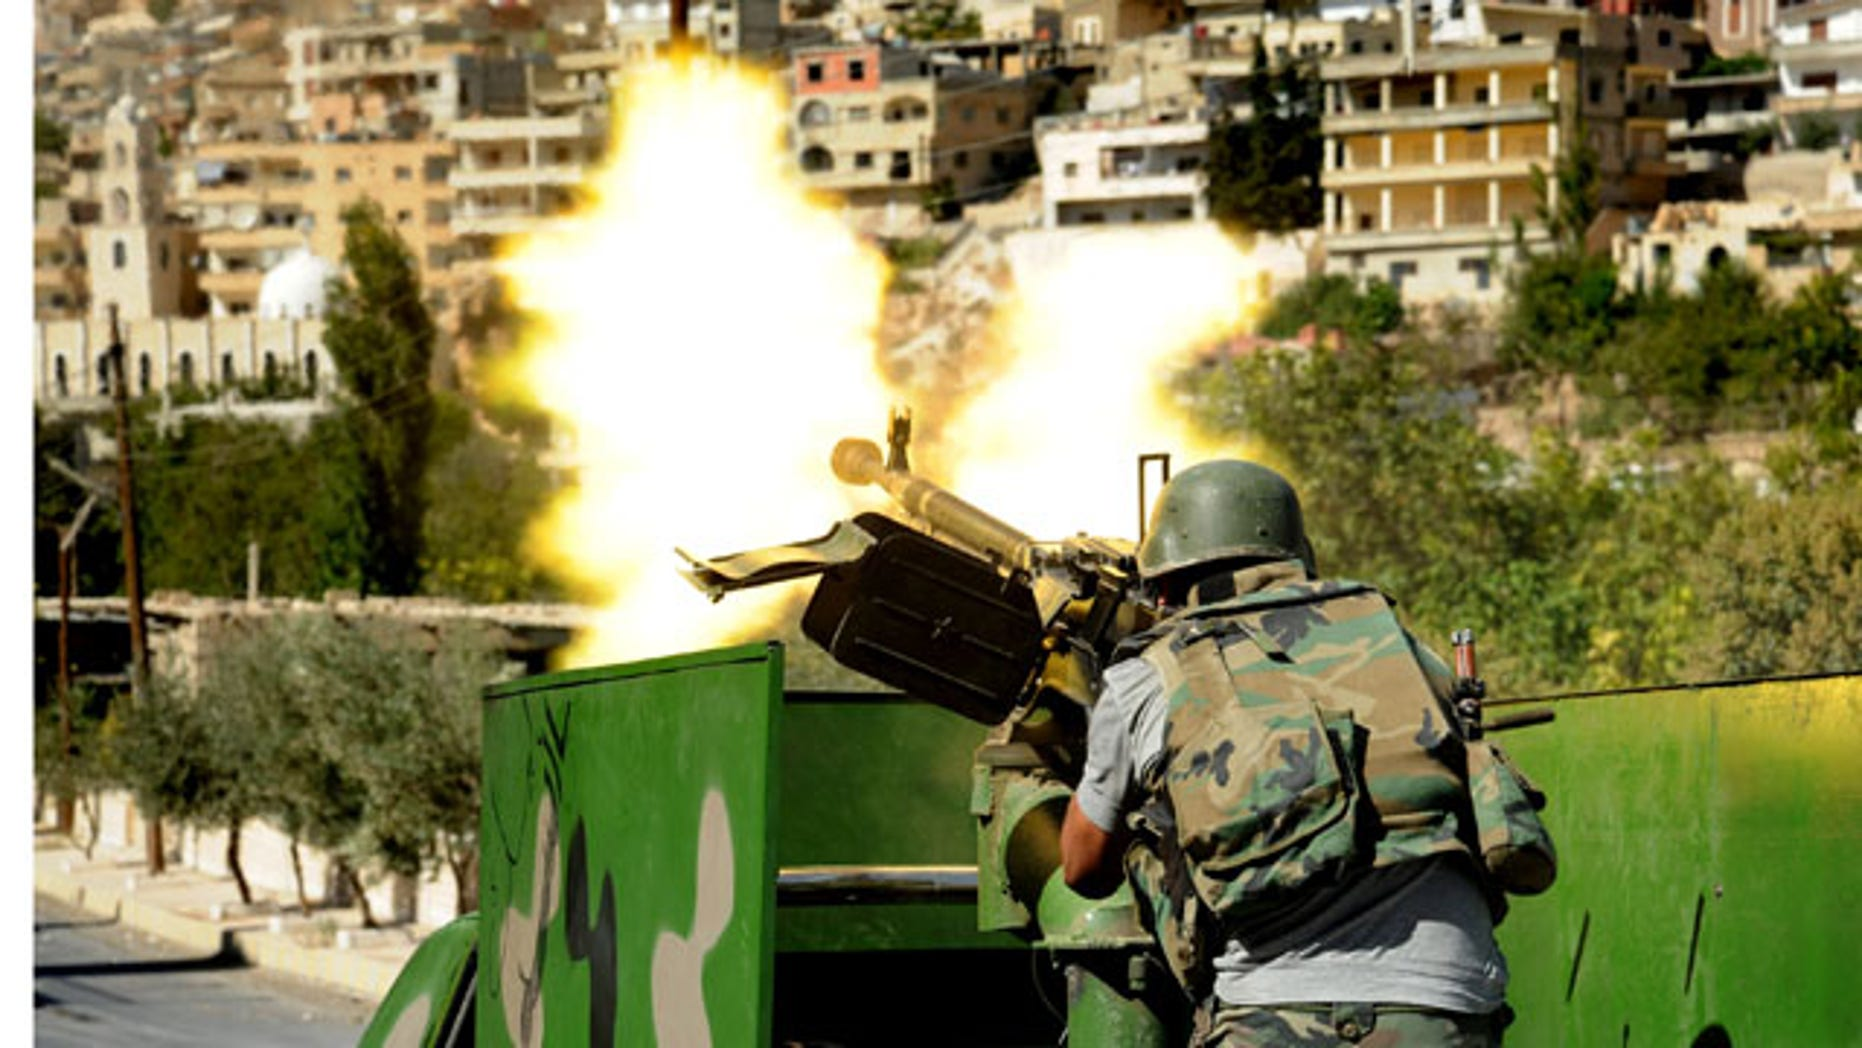 FILE -- In this Saturday, Sept. 7, 2013 file photo released by the Syrian official news agency SANA, a Syrian military solider fires a heavy machine gun during clashes with rebels in Maaloula village, northeast of the capital Damascus (AP Photo)